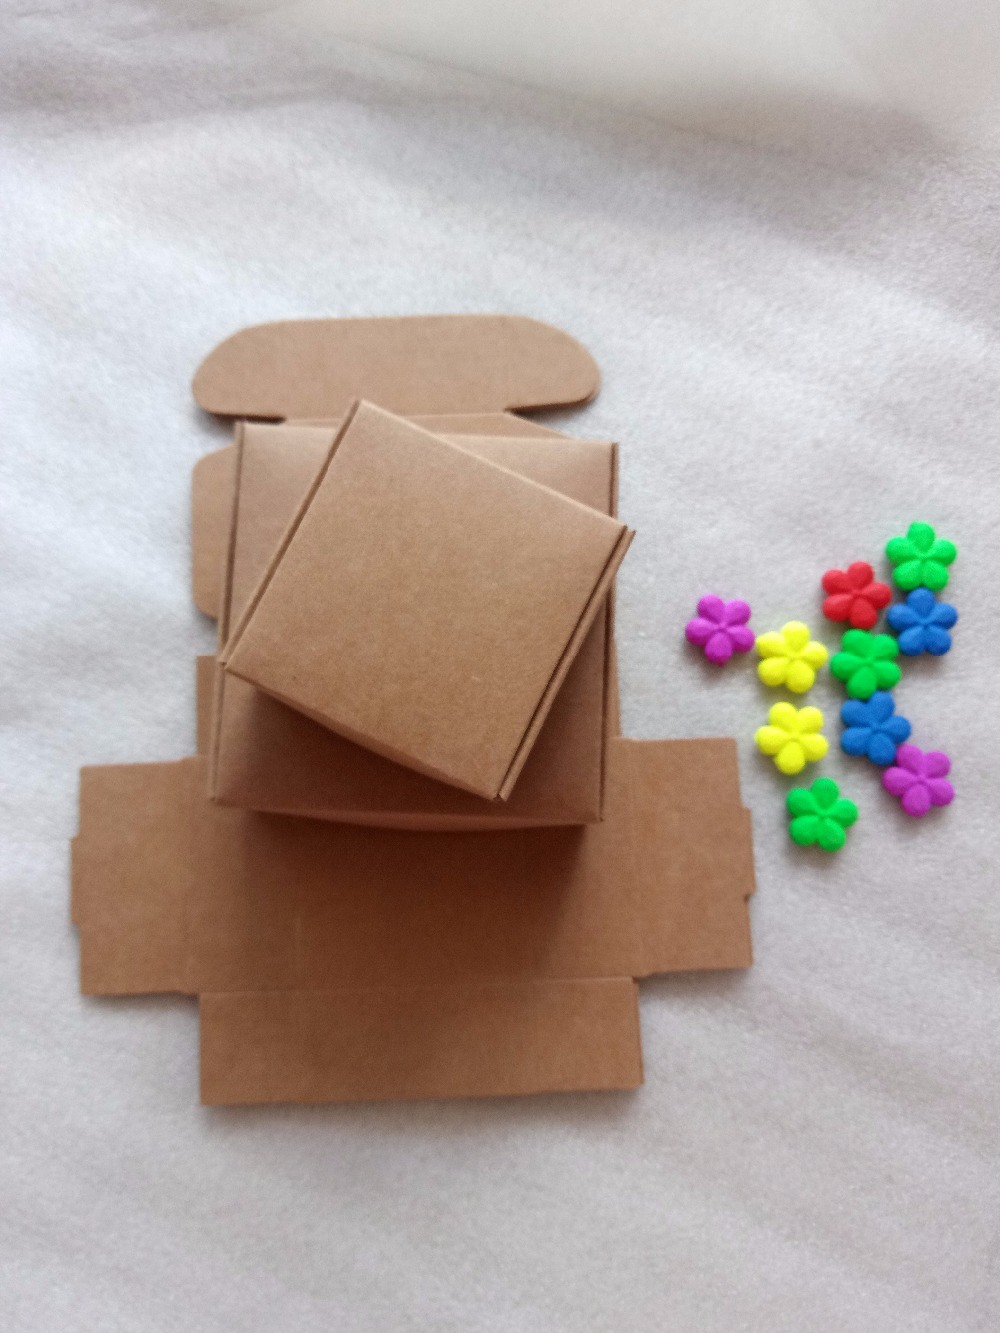 20pcs DIY Kraft Paper Box Gift Boxes For Wedding Favors Birthday Candy Cookies Christmas Jewelry package boxes Party Supplies in Gift Bags Wrapping Supplies from Home Garden